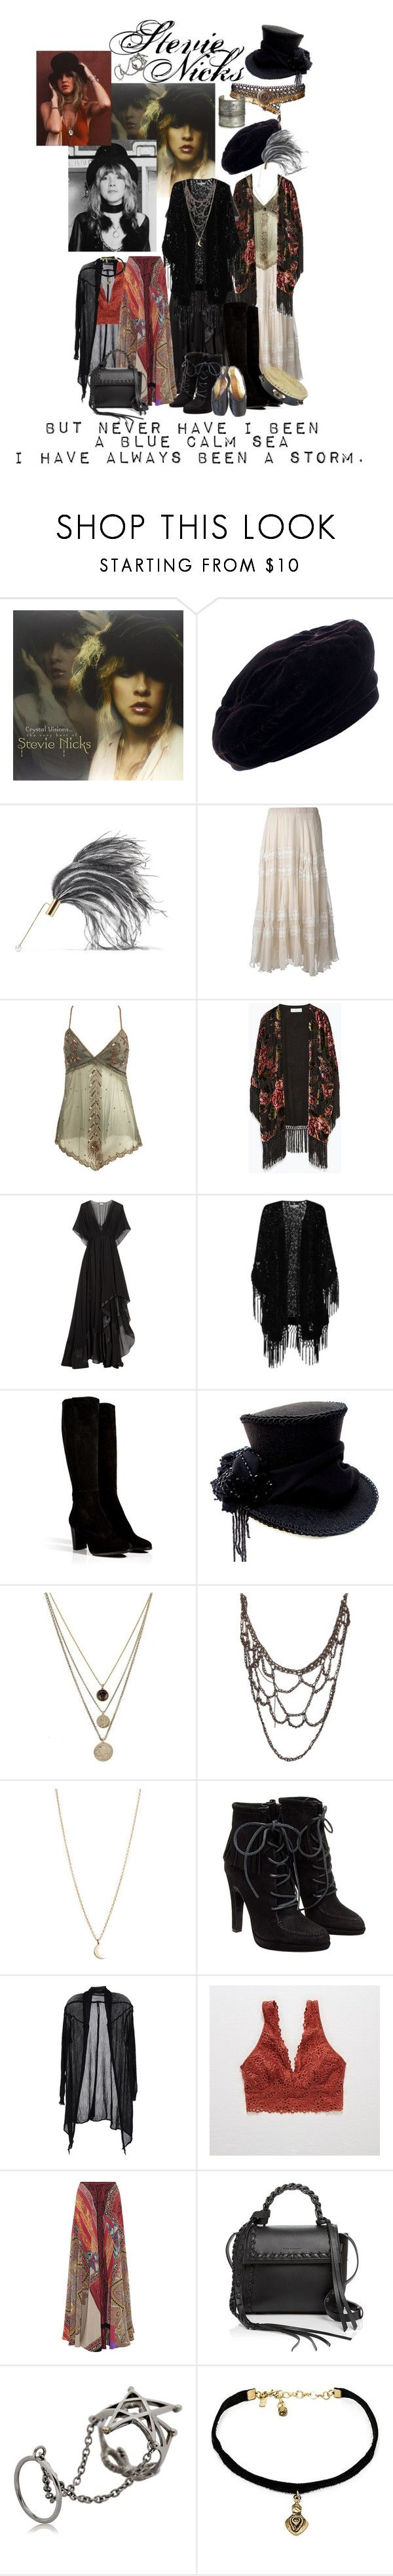 """Stevie Nicks.. Style, music icon"" by mia-christine ❤ liked on Polyvore featuring Yves Saint Laurent, Hillier Bartley, Mes Demoiselles..., Wet Seal, Zara, By Malene Birger, True Decadence, Sergio Rossi, LowLuv and Arielle De Pinto"